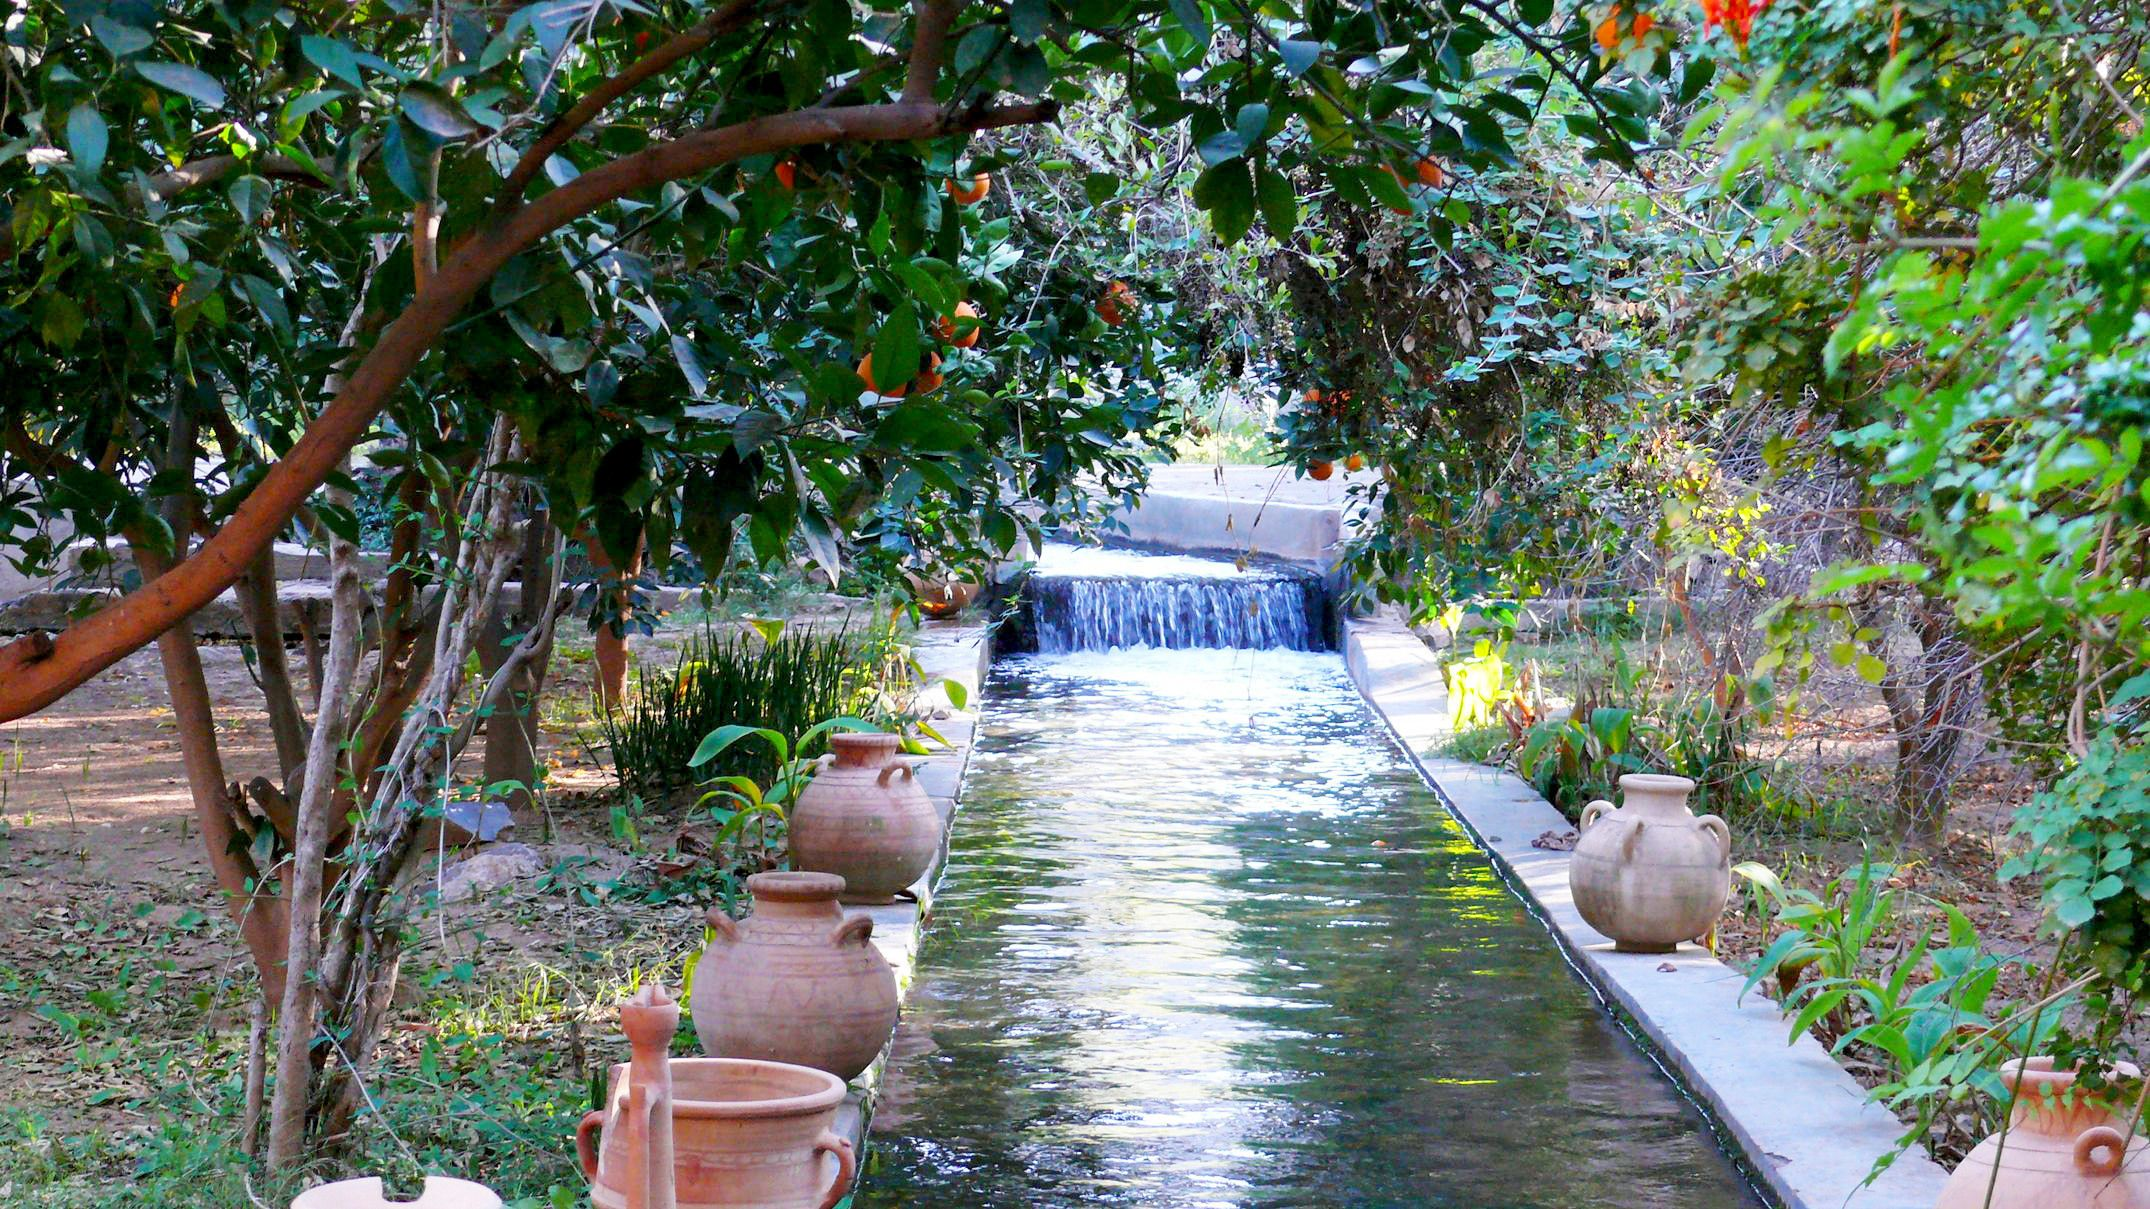 Clay pots sit along a stream running through a garden in Taroudant